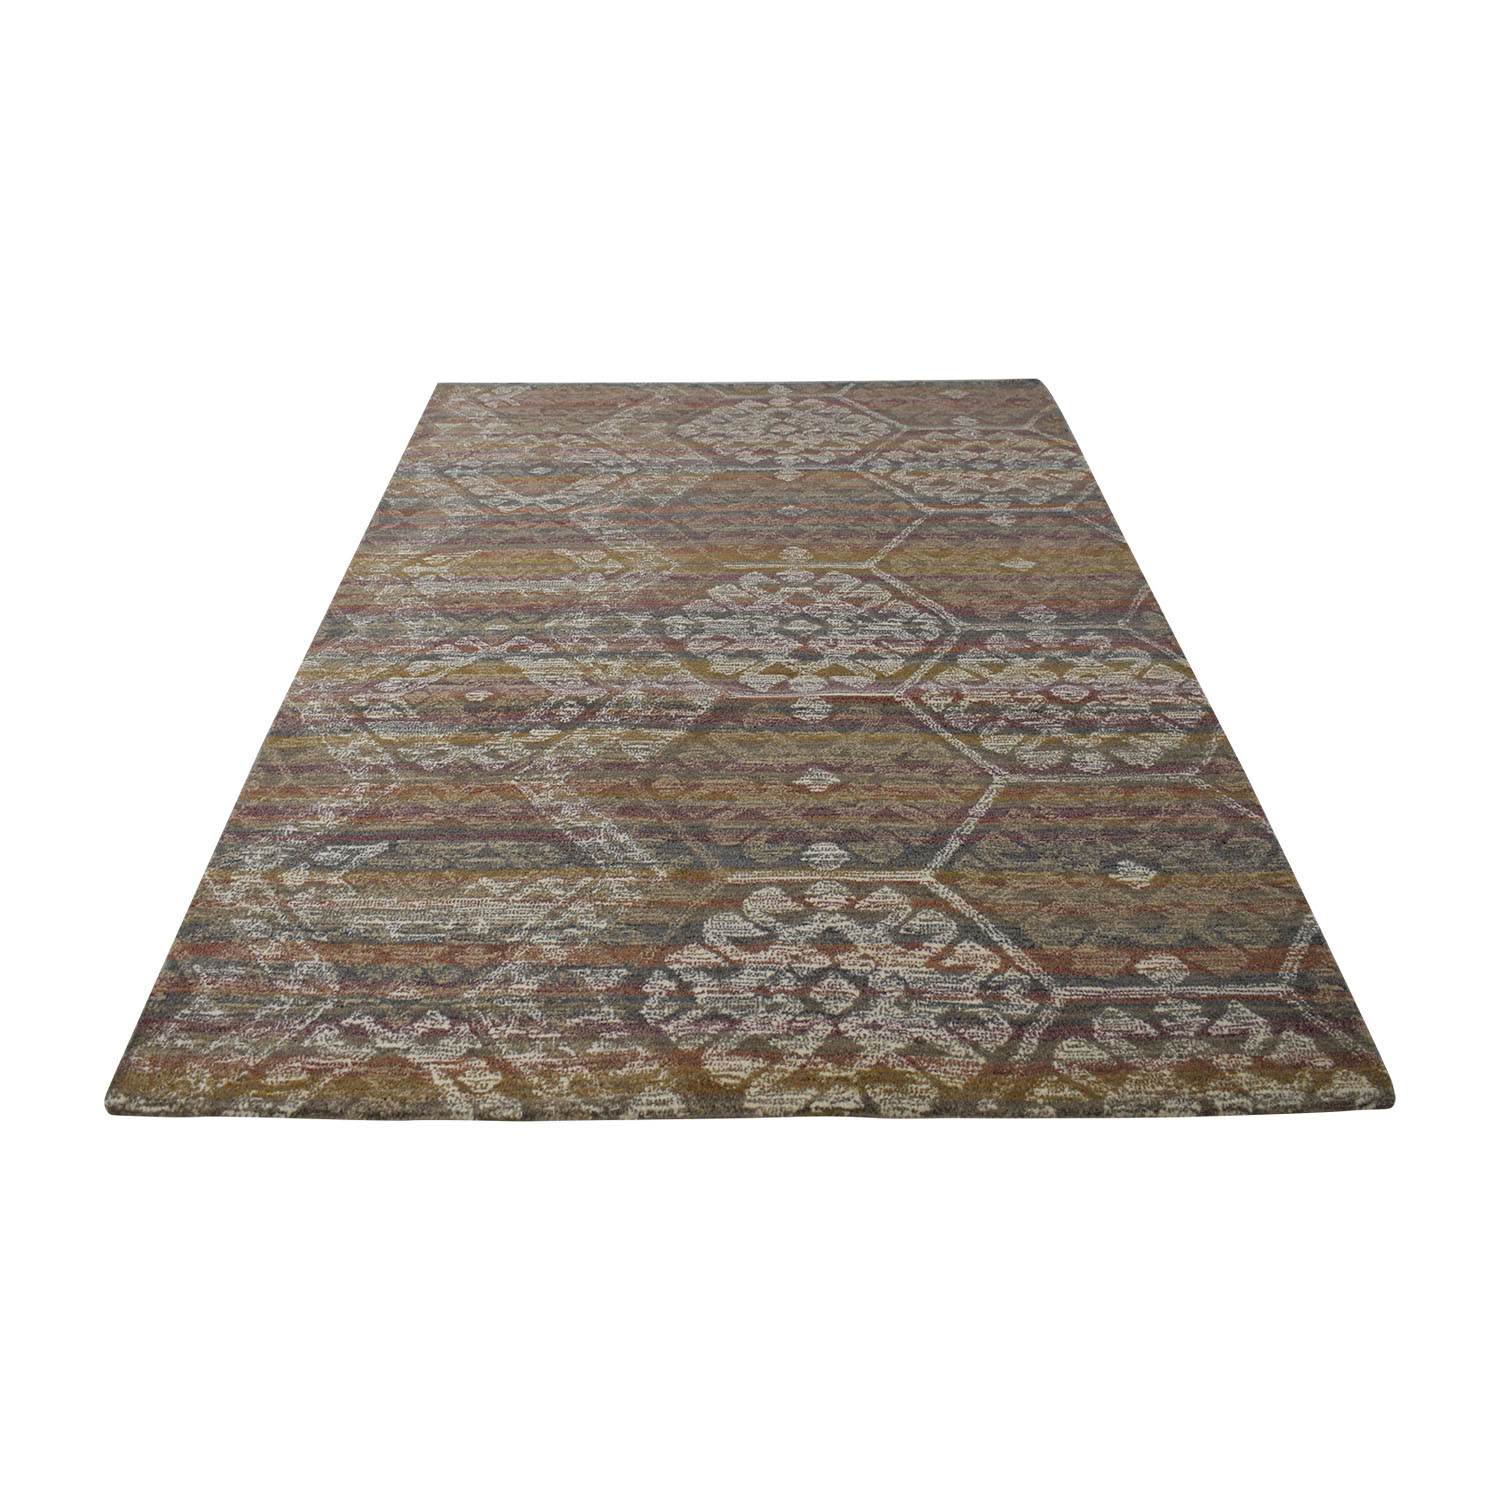 Obeetee Multi-Colored Handtufted Rug sale